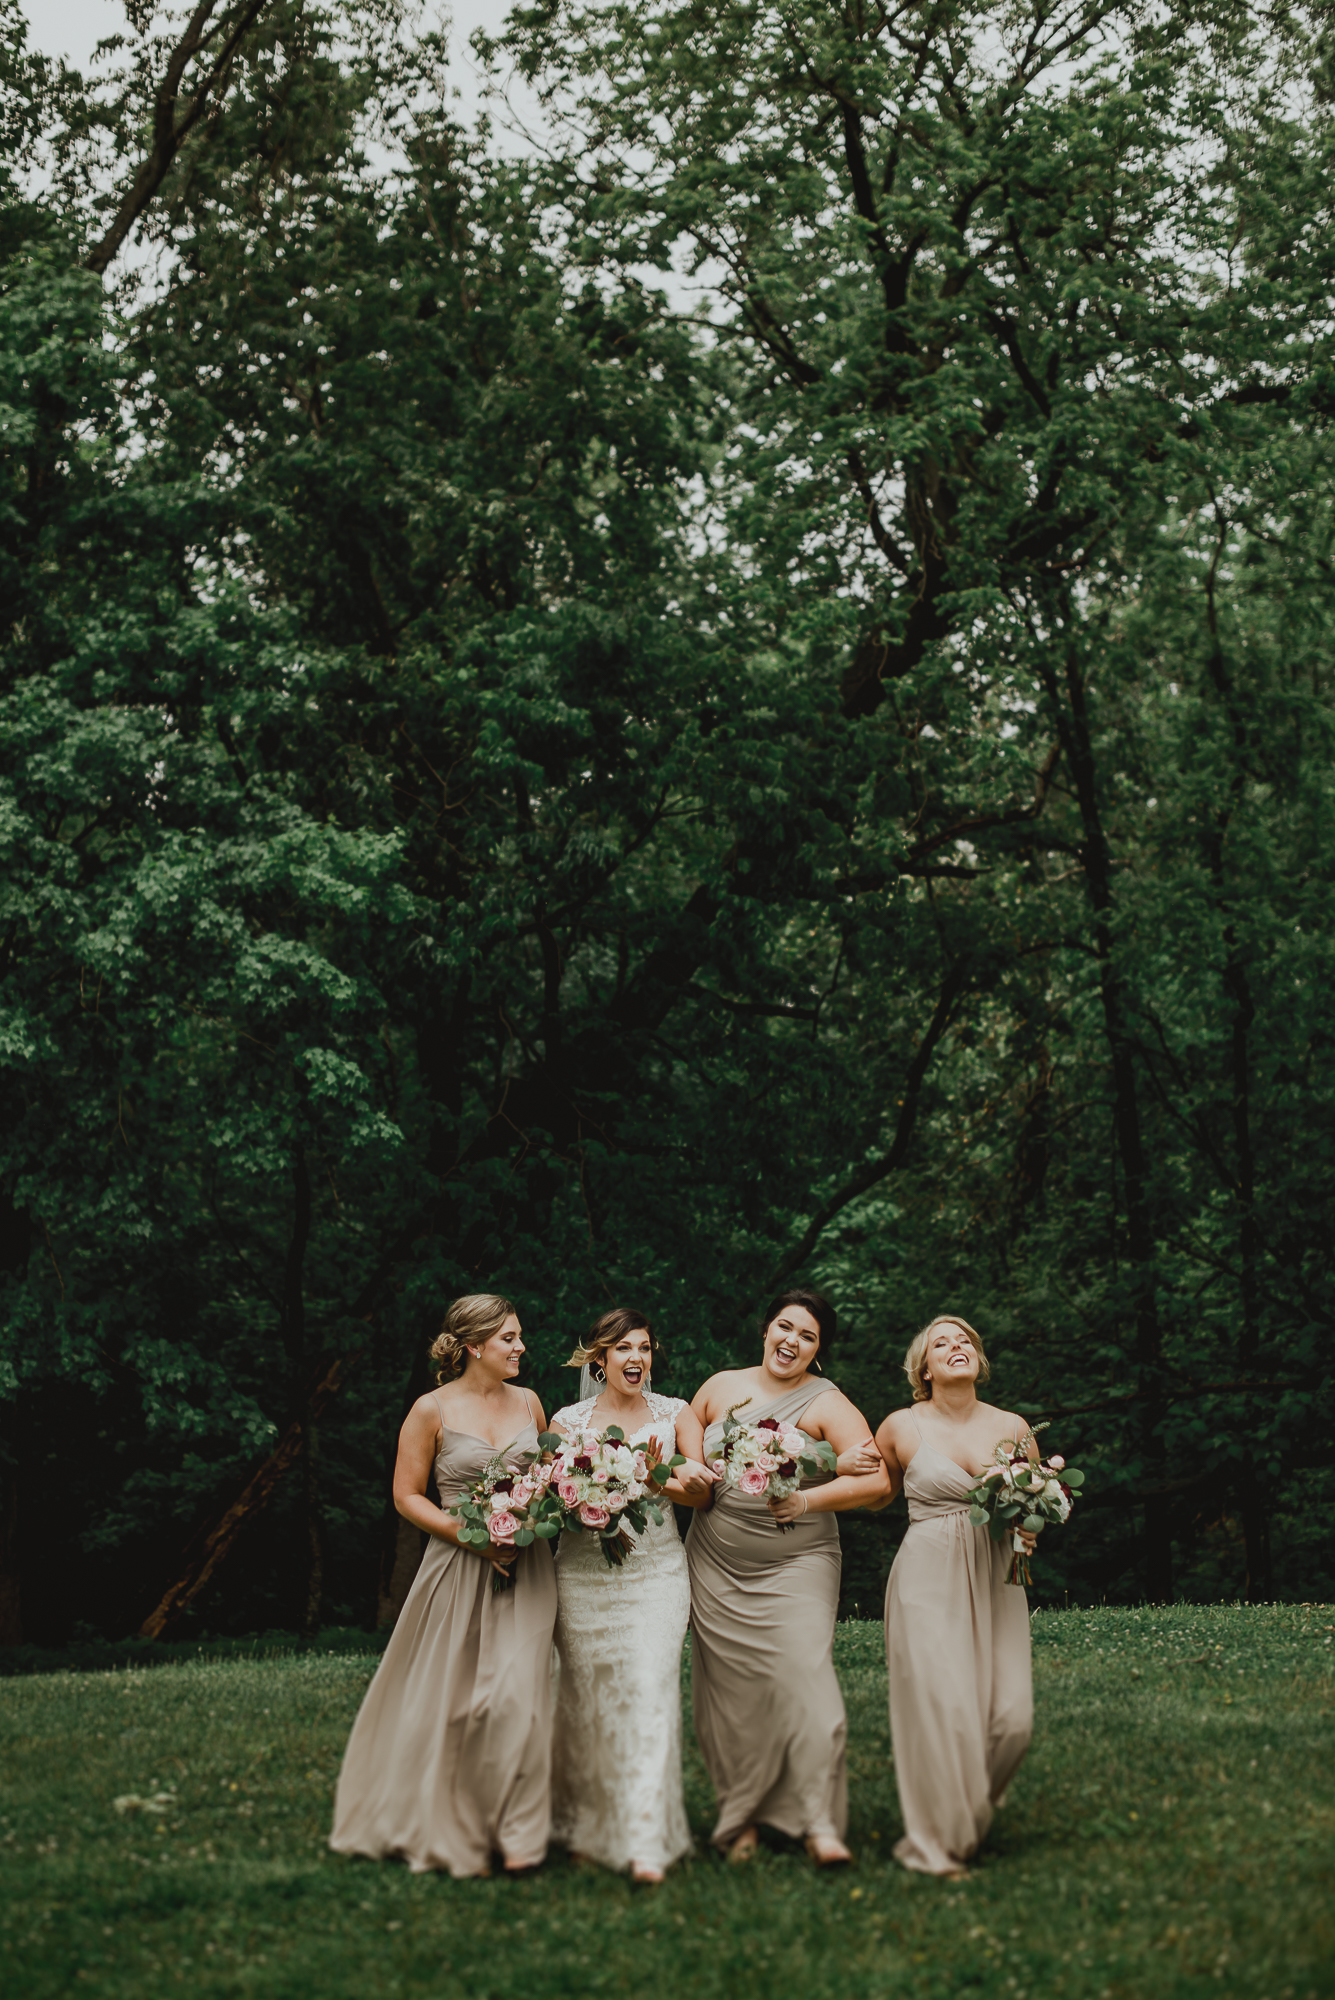 Melissa Cervantes Photography _ Kelsey + Ben Junebug Weddings Submission-27.jpg